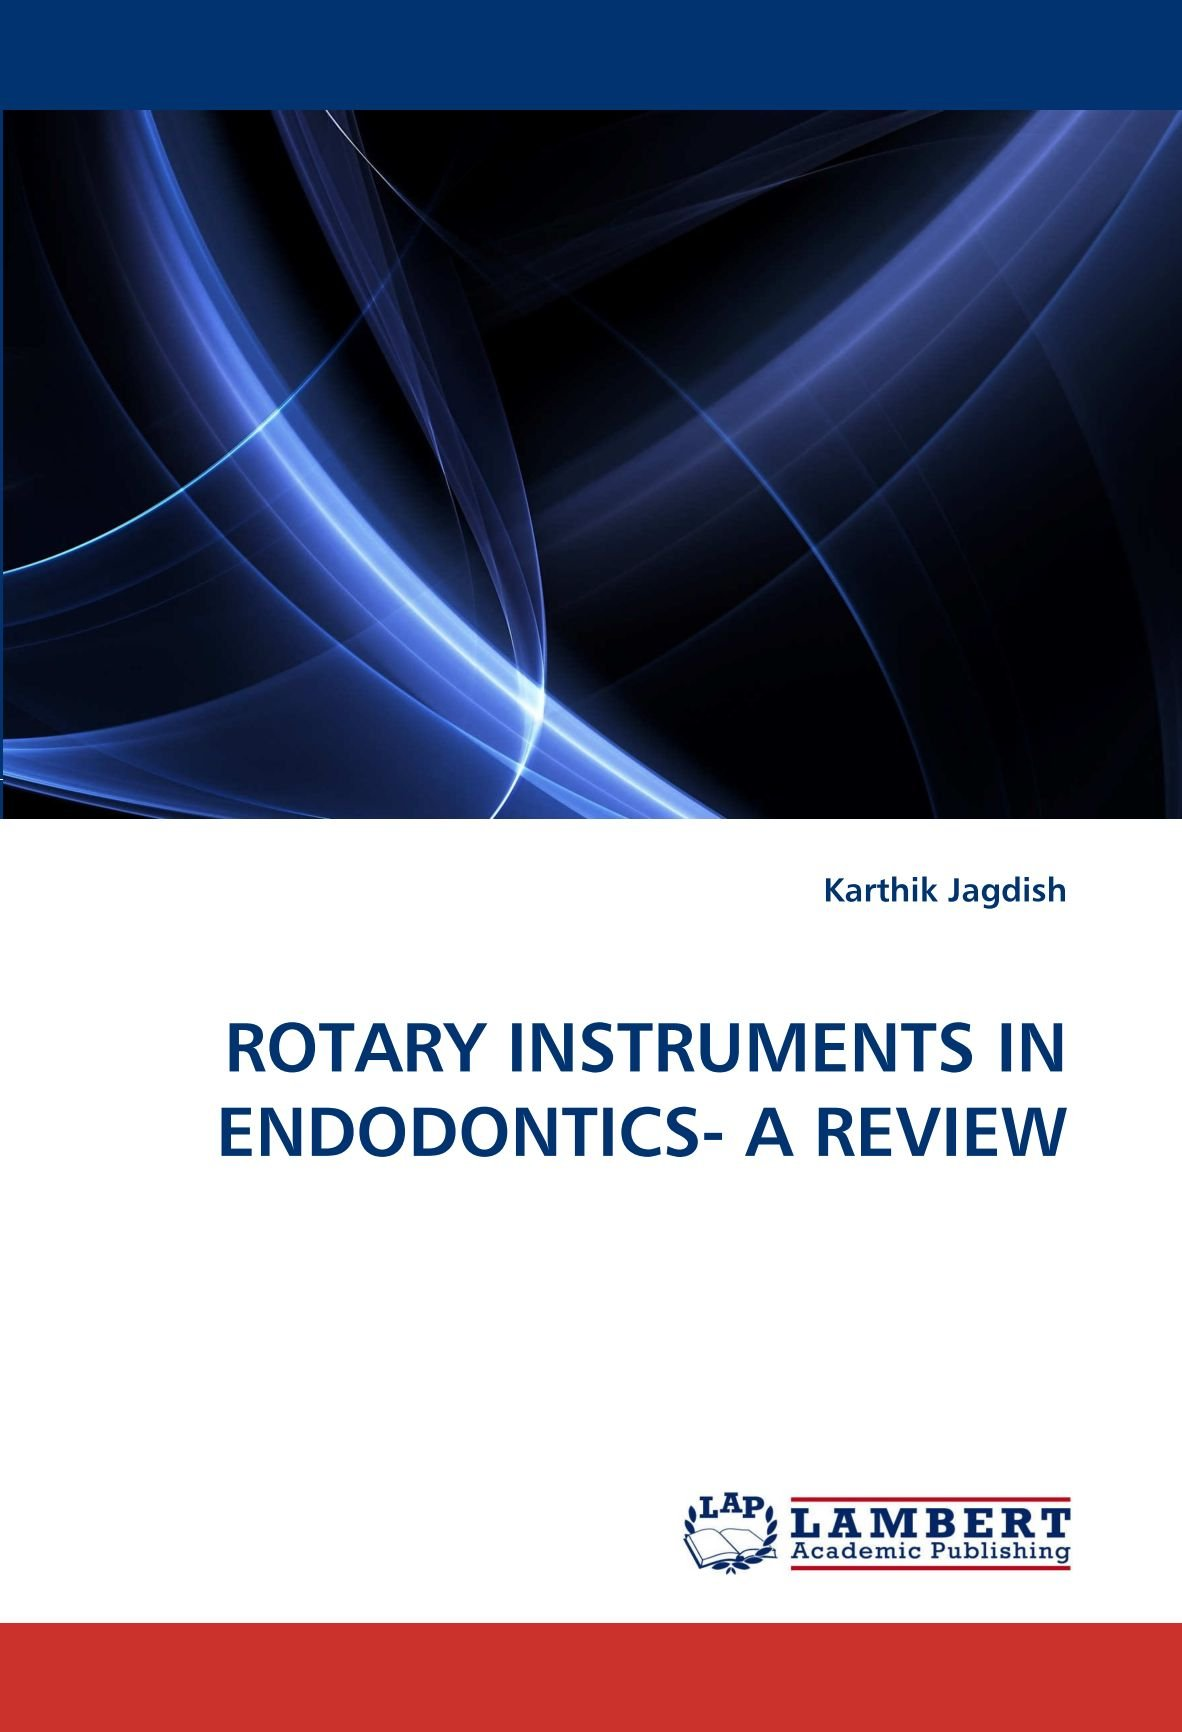 ROTARY INSTRUMENTS IN ENDODONTICS- A REVIEW by Brand: LAP LAMBERT Academic Publishing